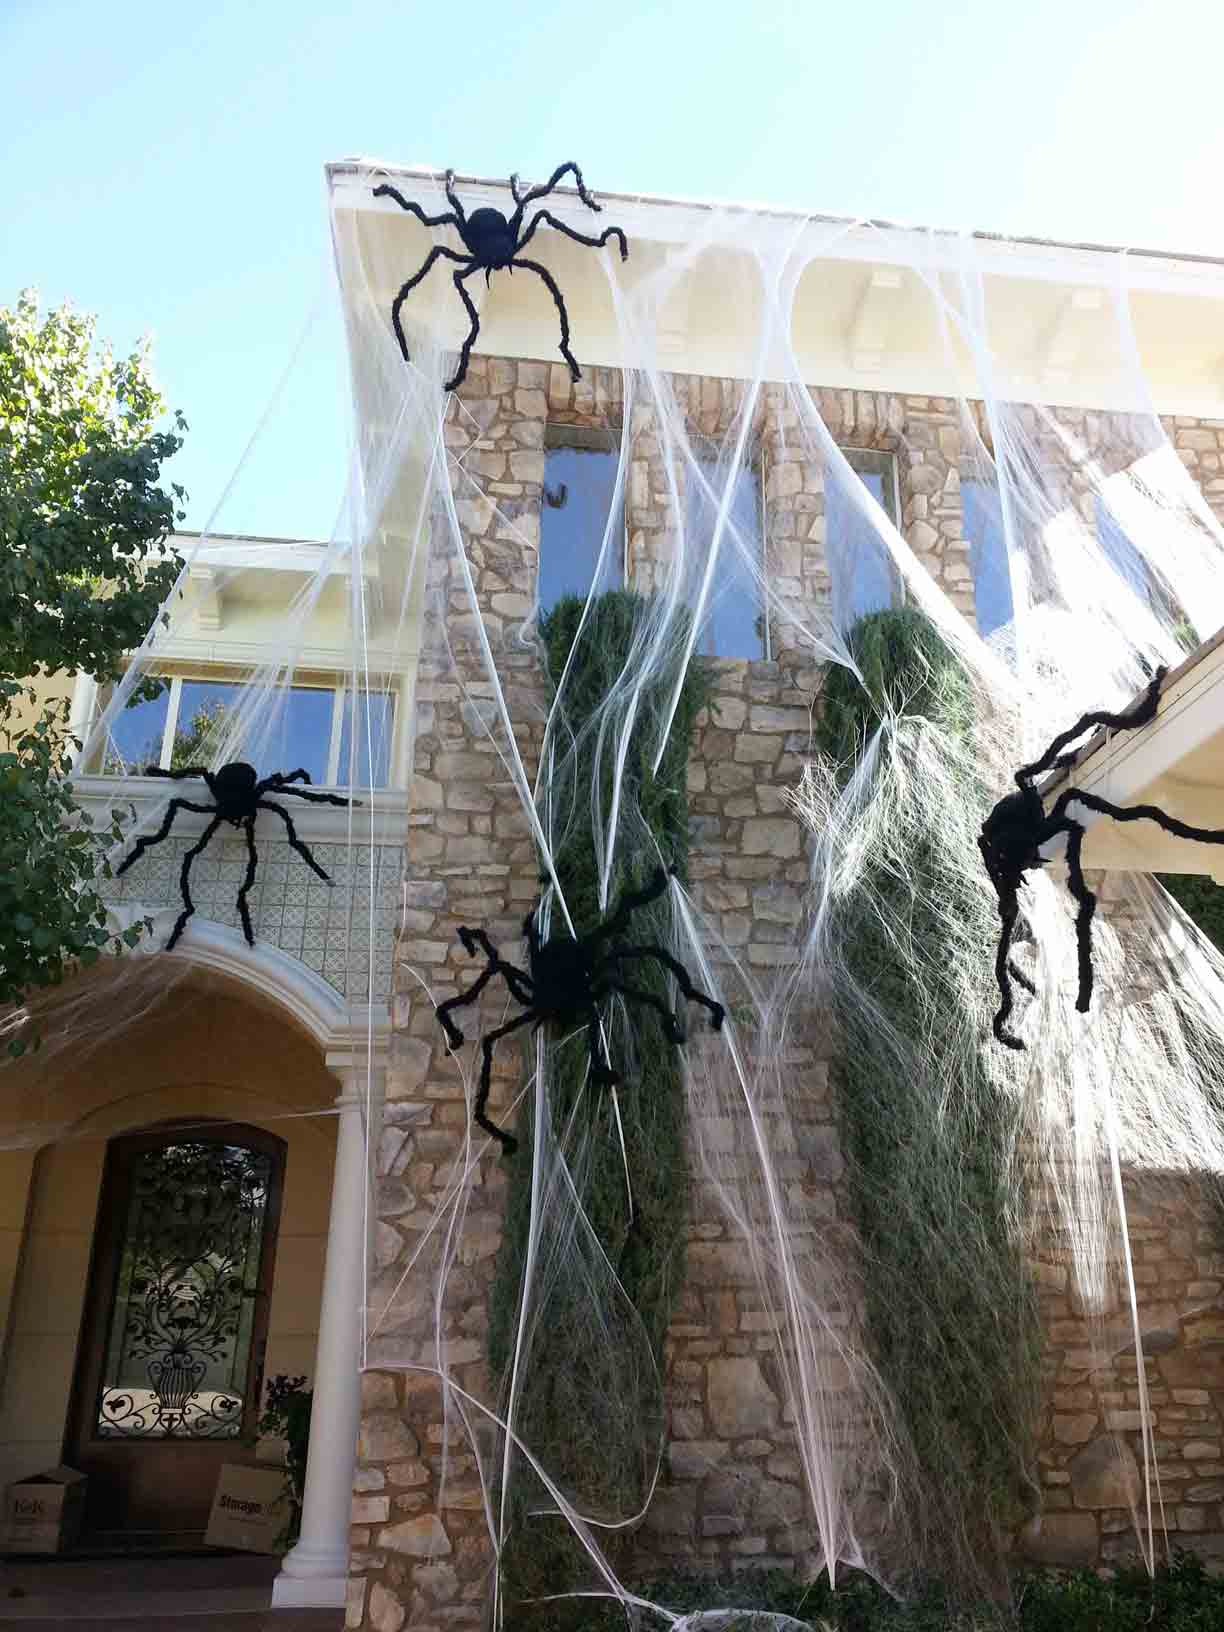 Spider web Halloween decor by Holiday Decorations in Las Vegas